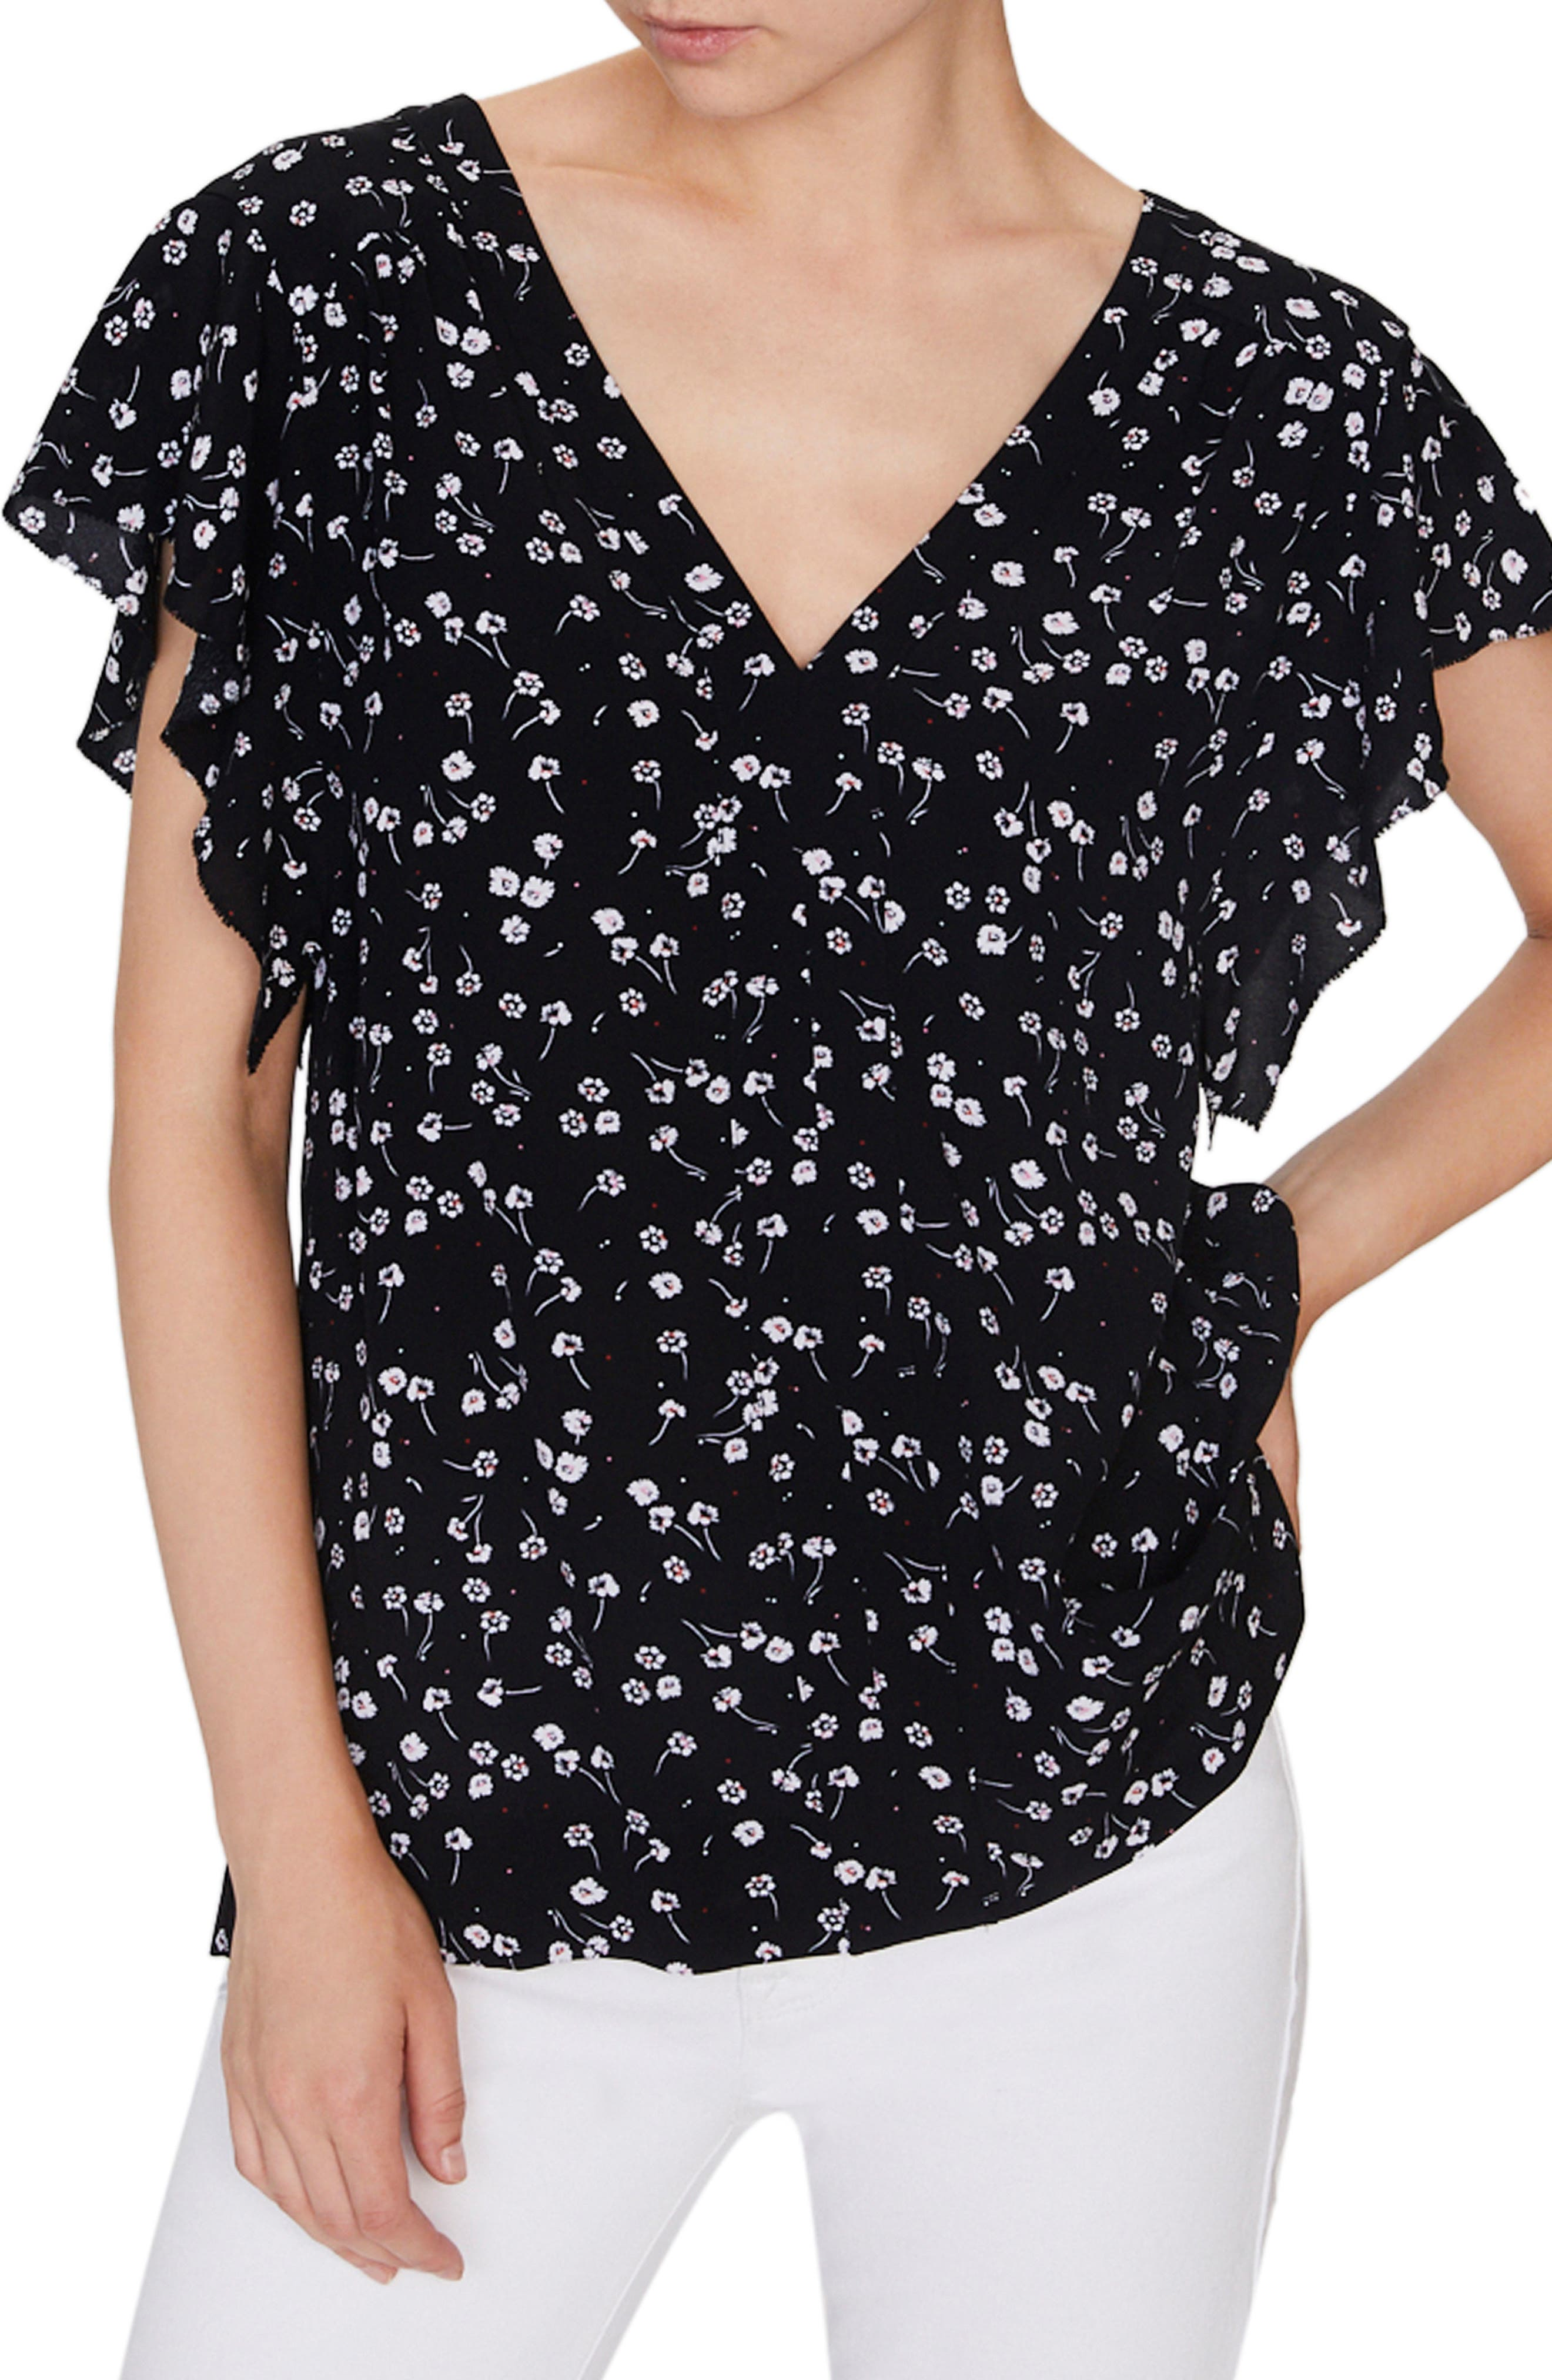 SANCTUARY, Countryside Floral Flowy Top, Main thumbnail 1, color, 006